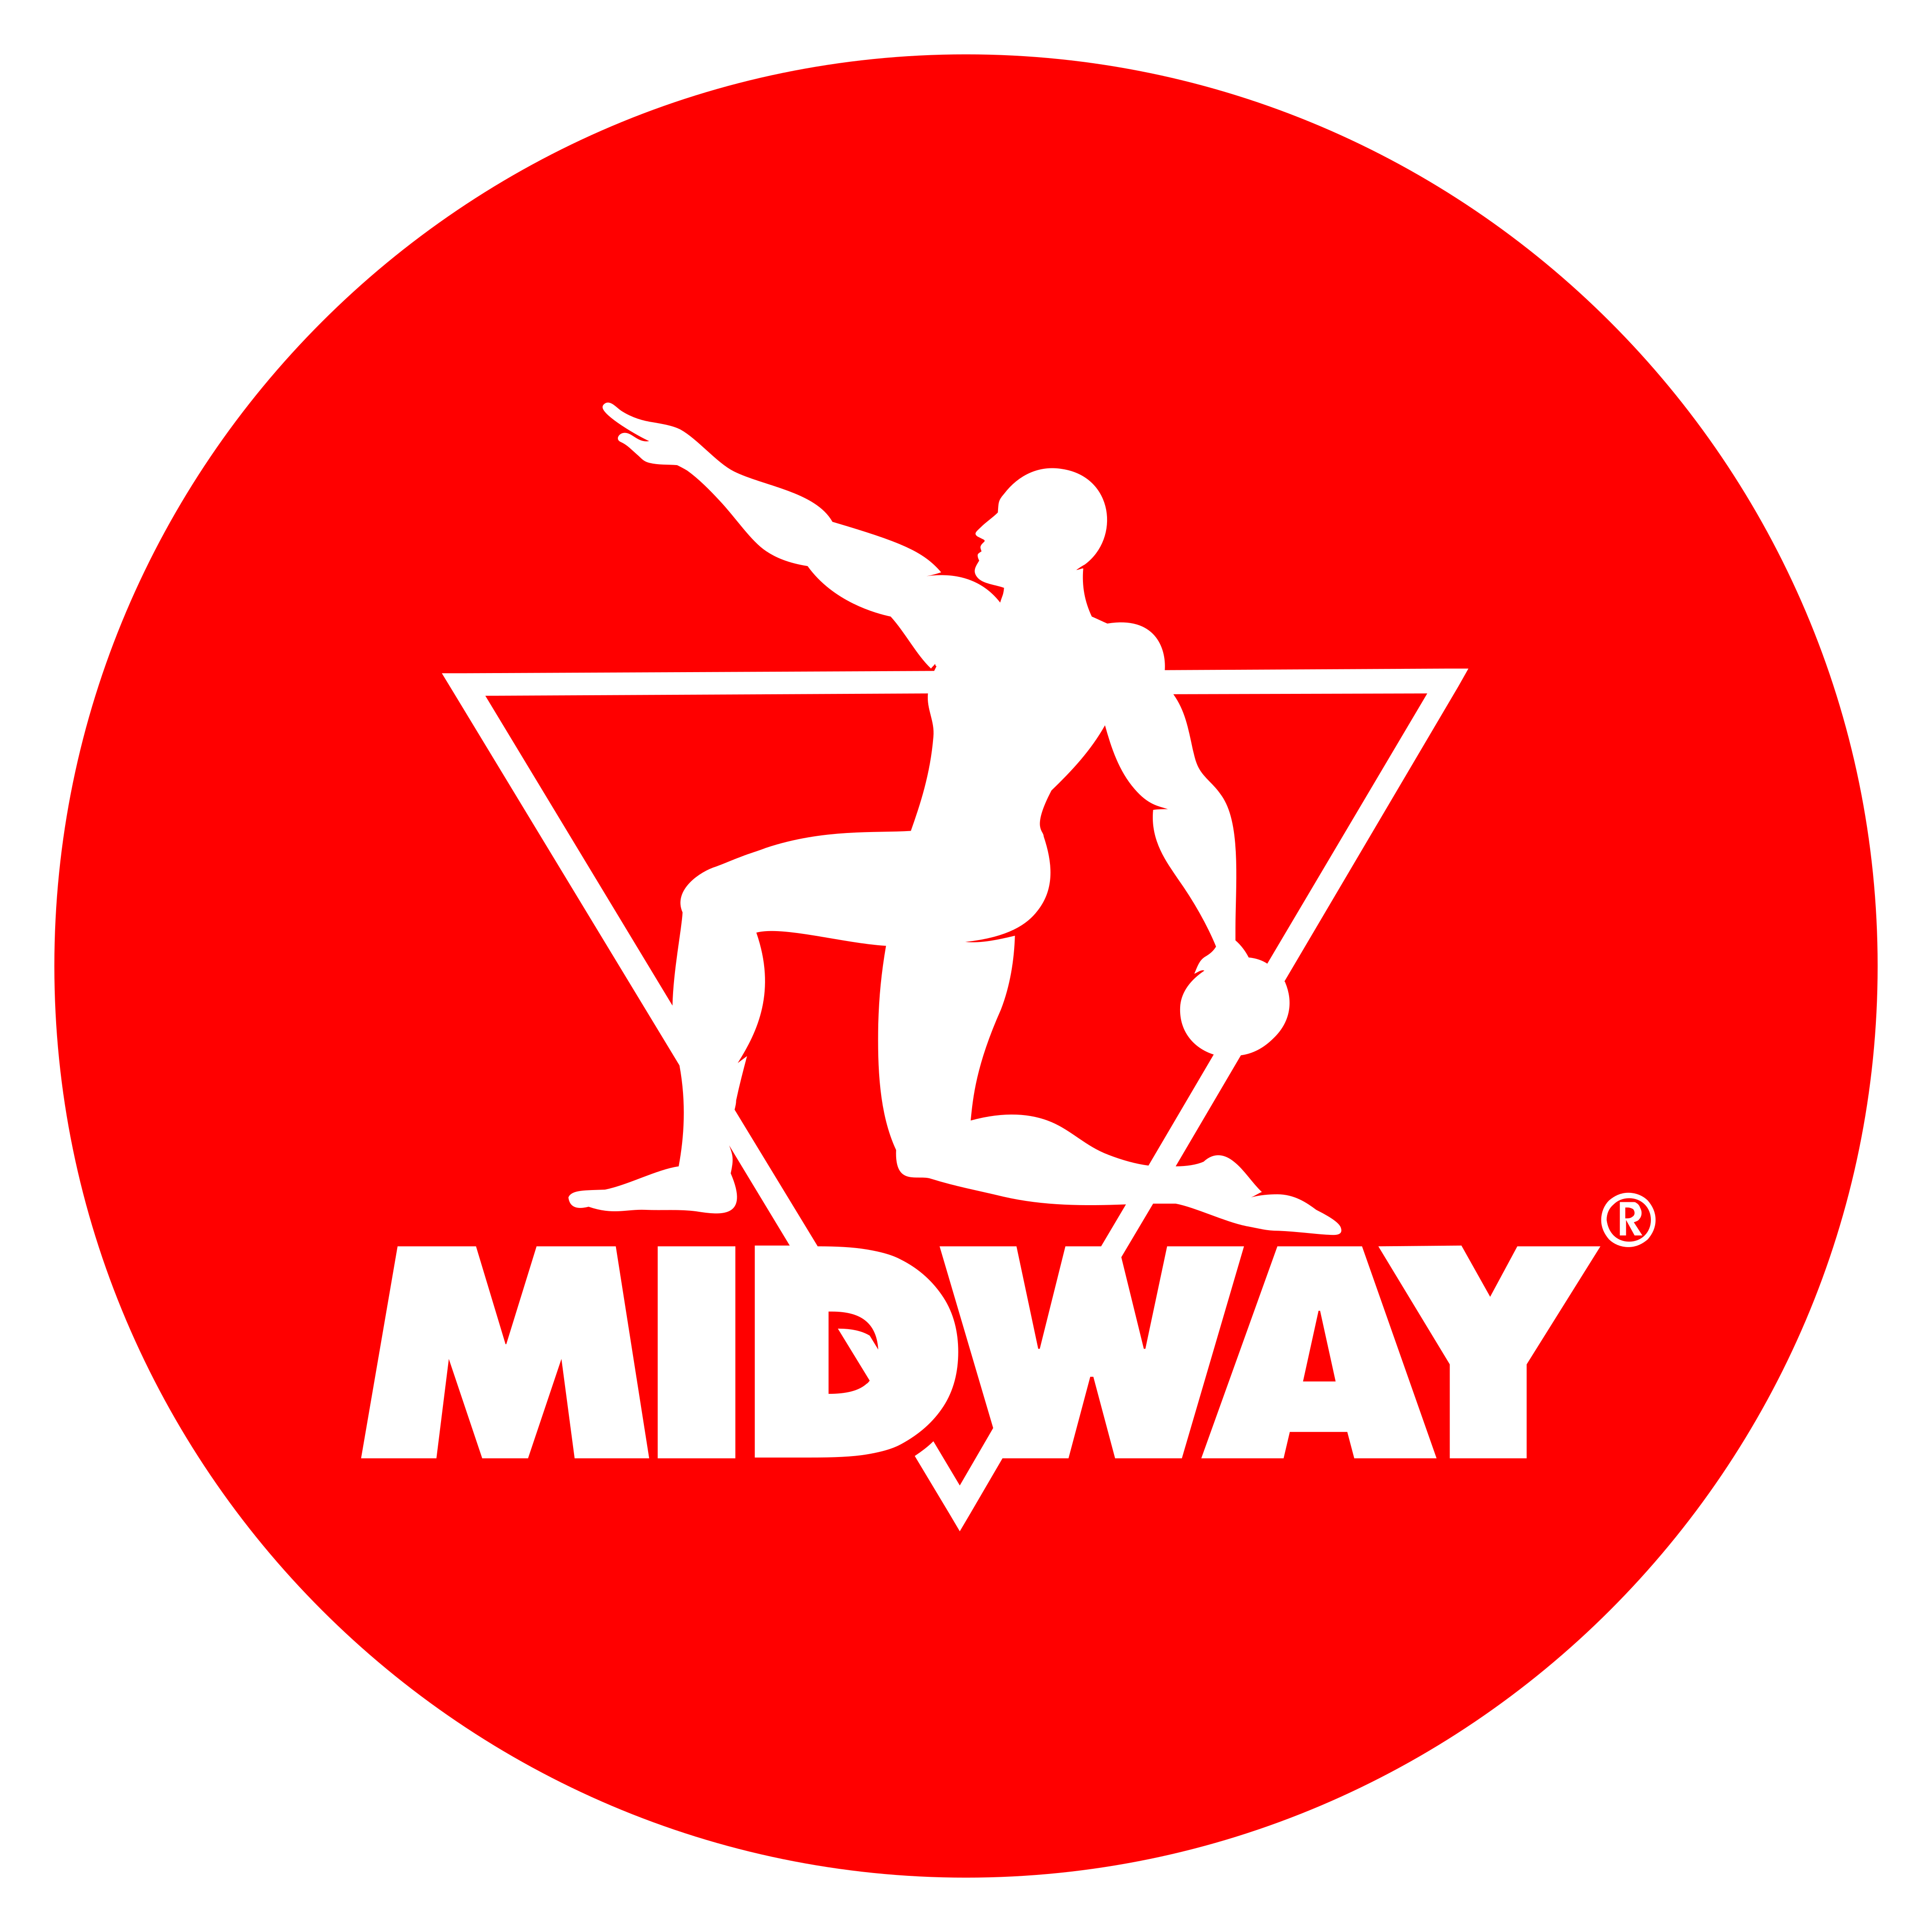 midway labs logo - Midway Labs Logo